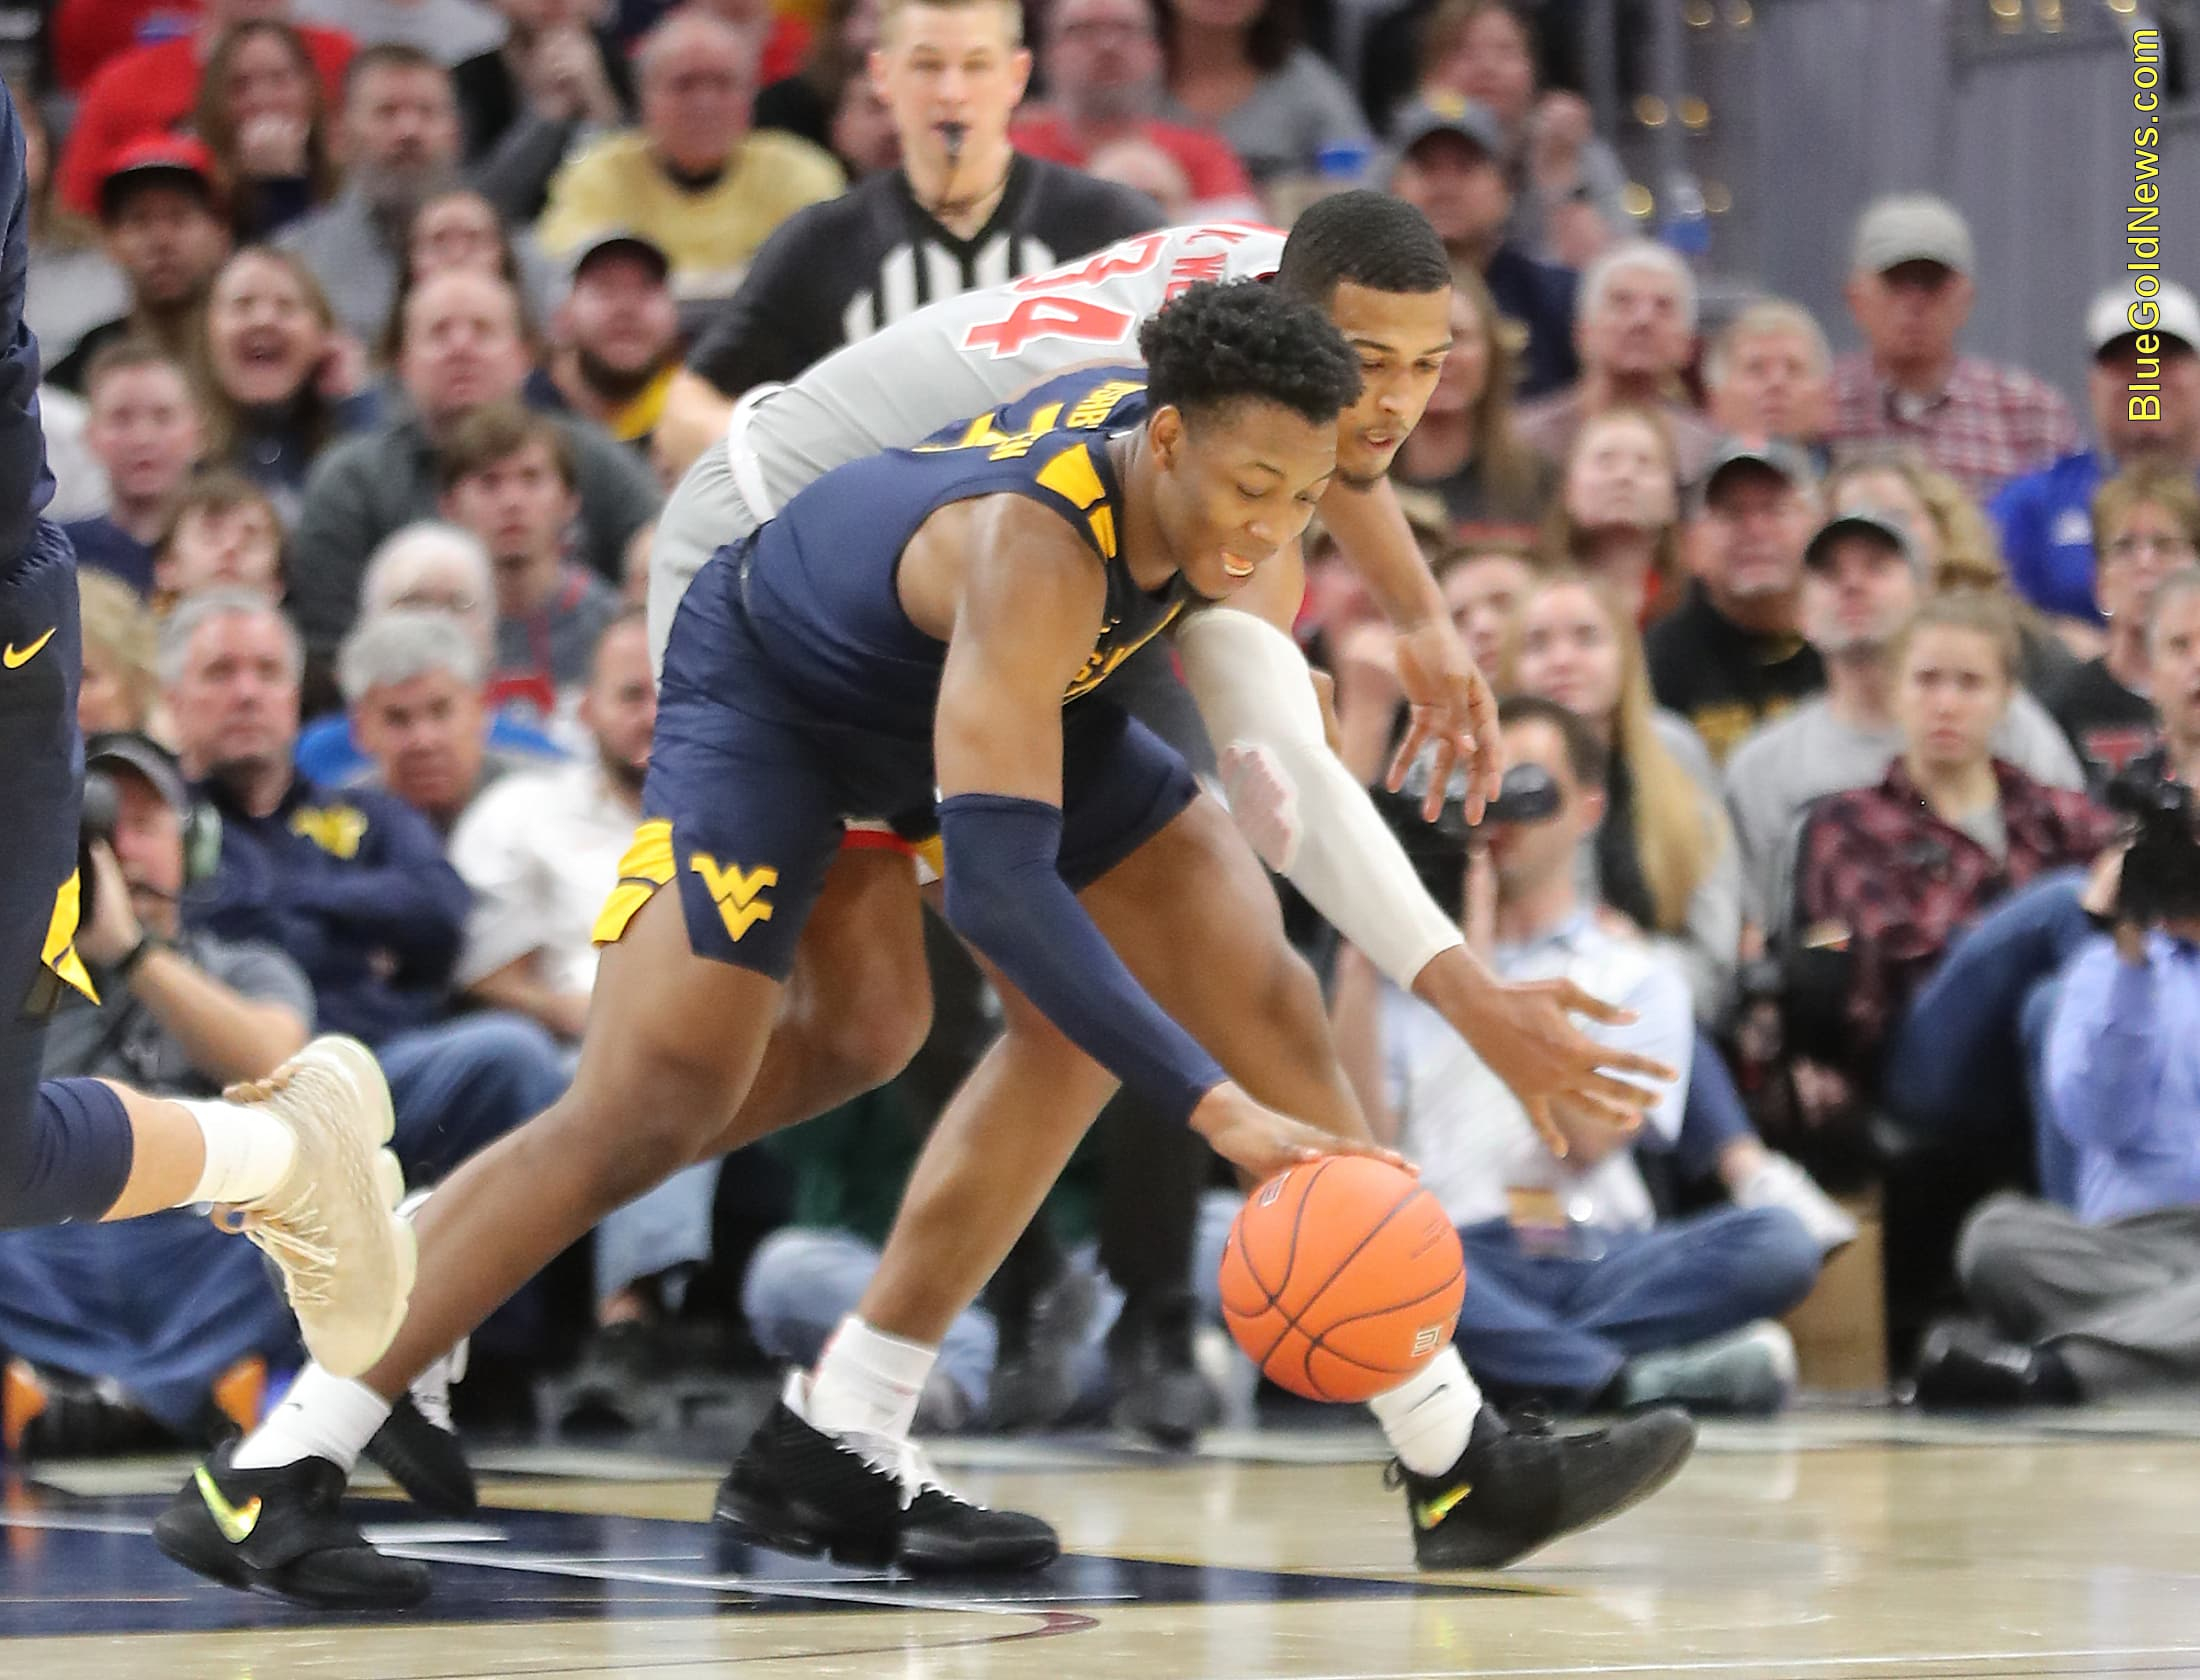 West Virginia forward Gabe Osabuohien steals the ball from Ohio State's Kaleb Wesson